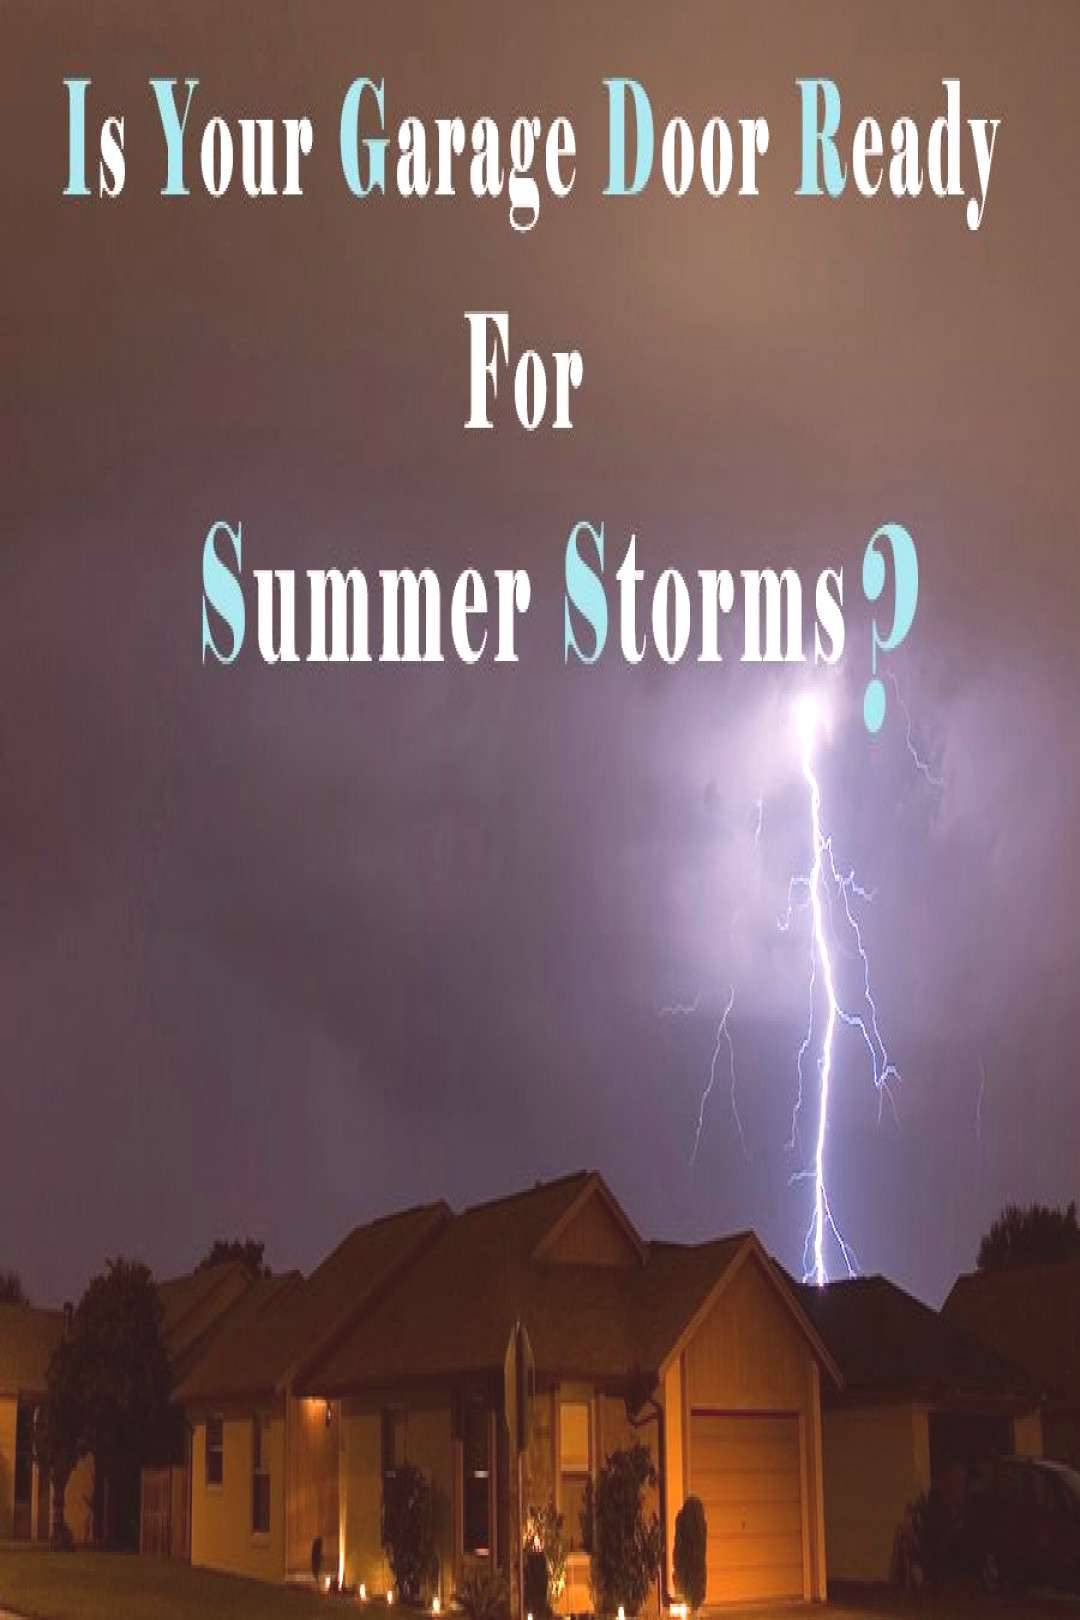 How to Protect Your Garage Door from the Impending Summer Storm? Here are some tips from Johnsons